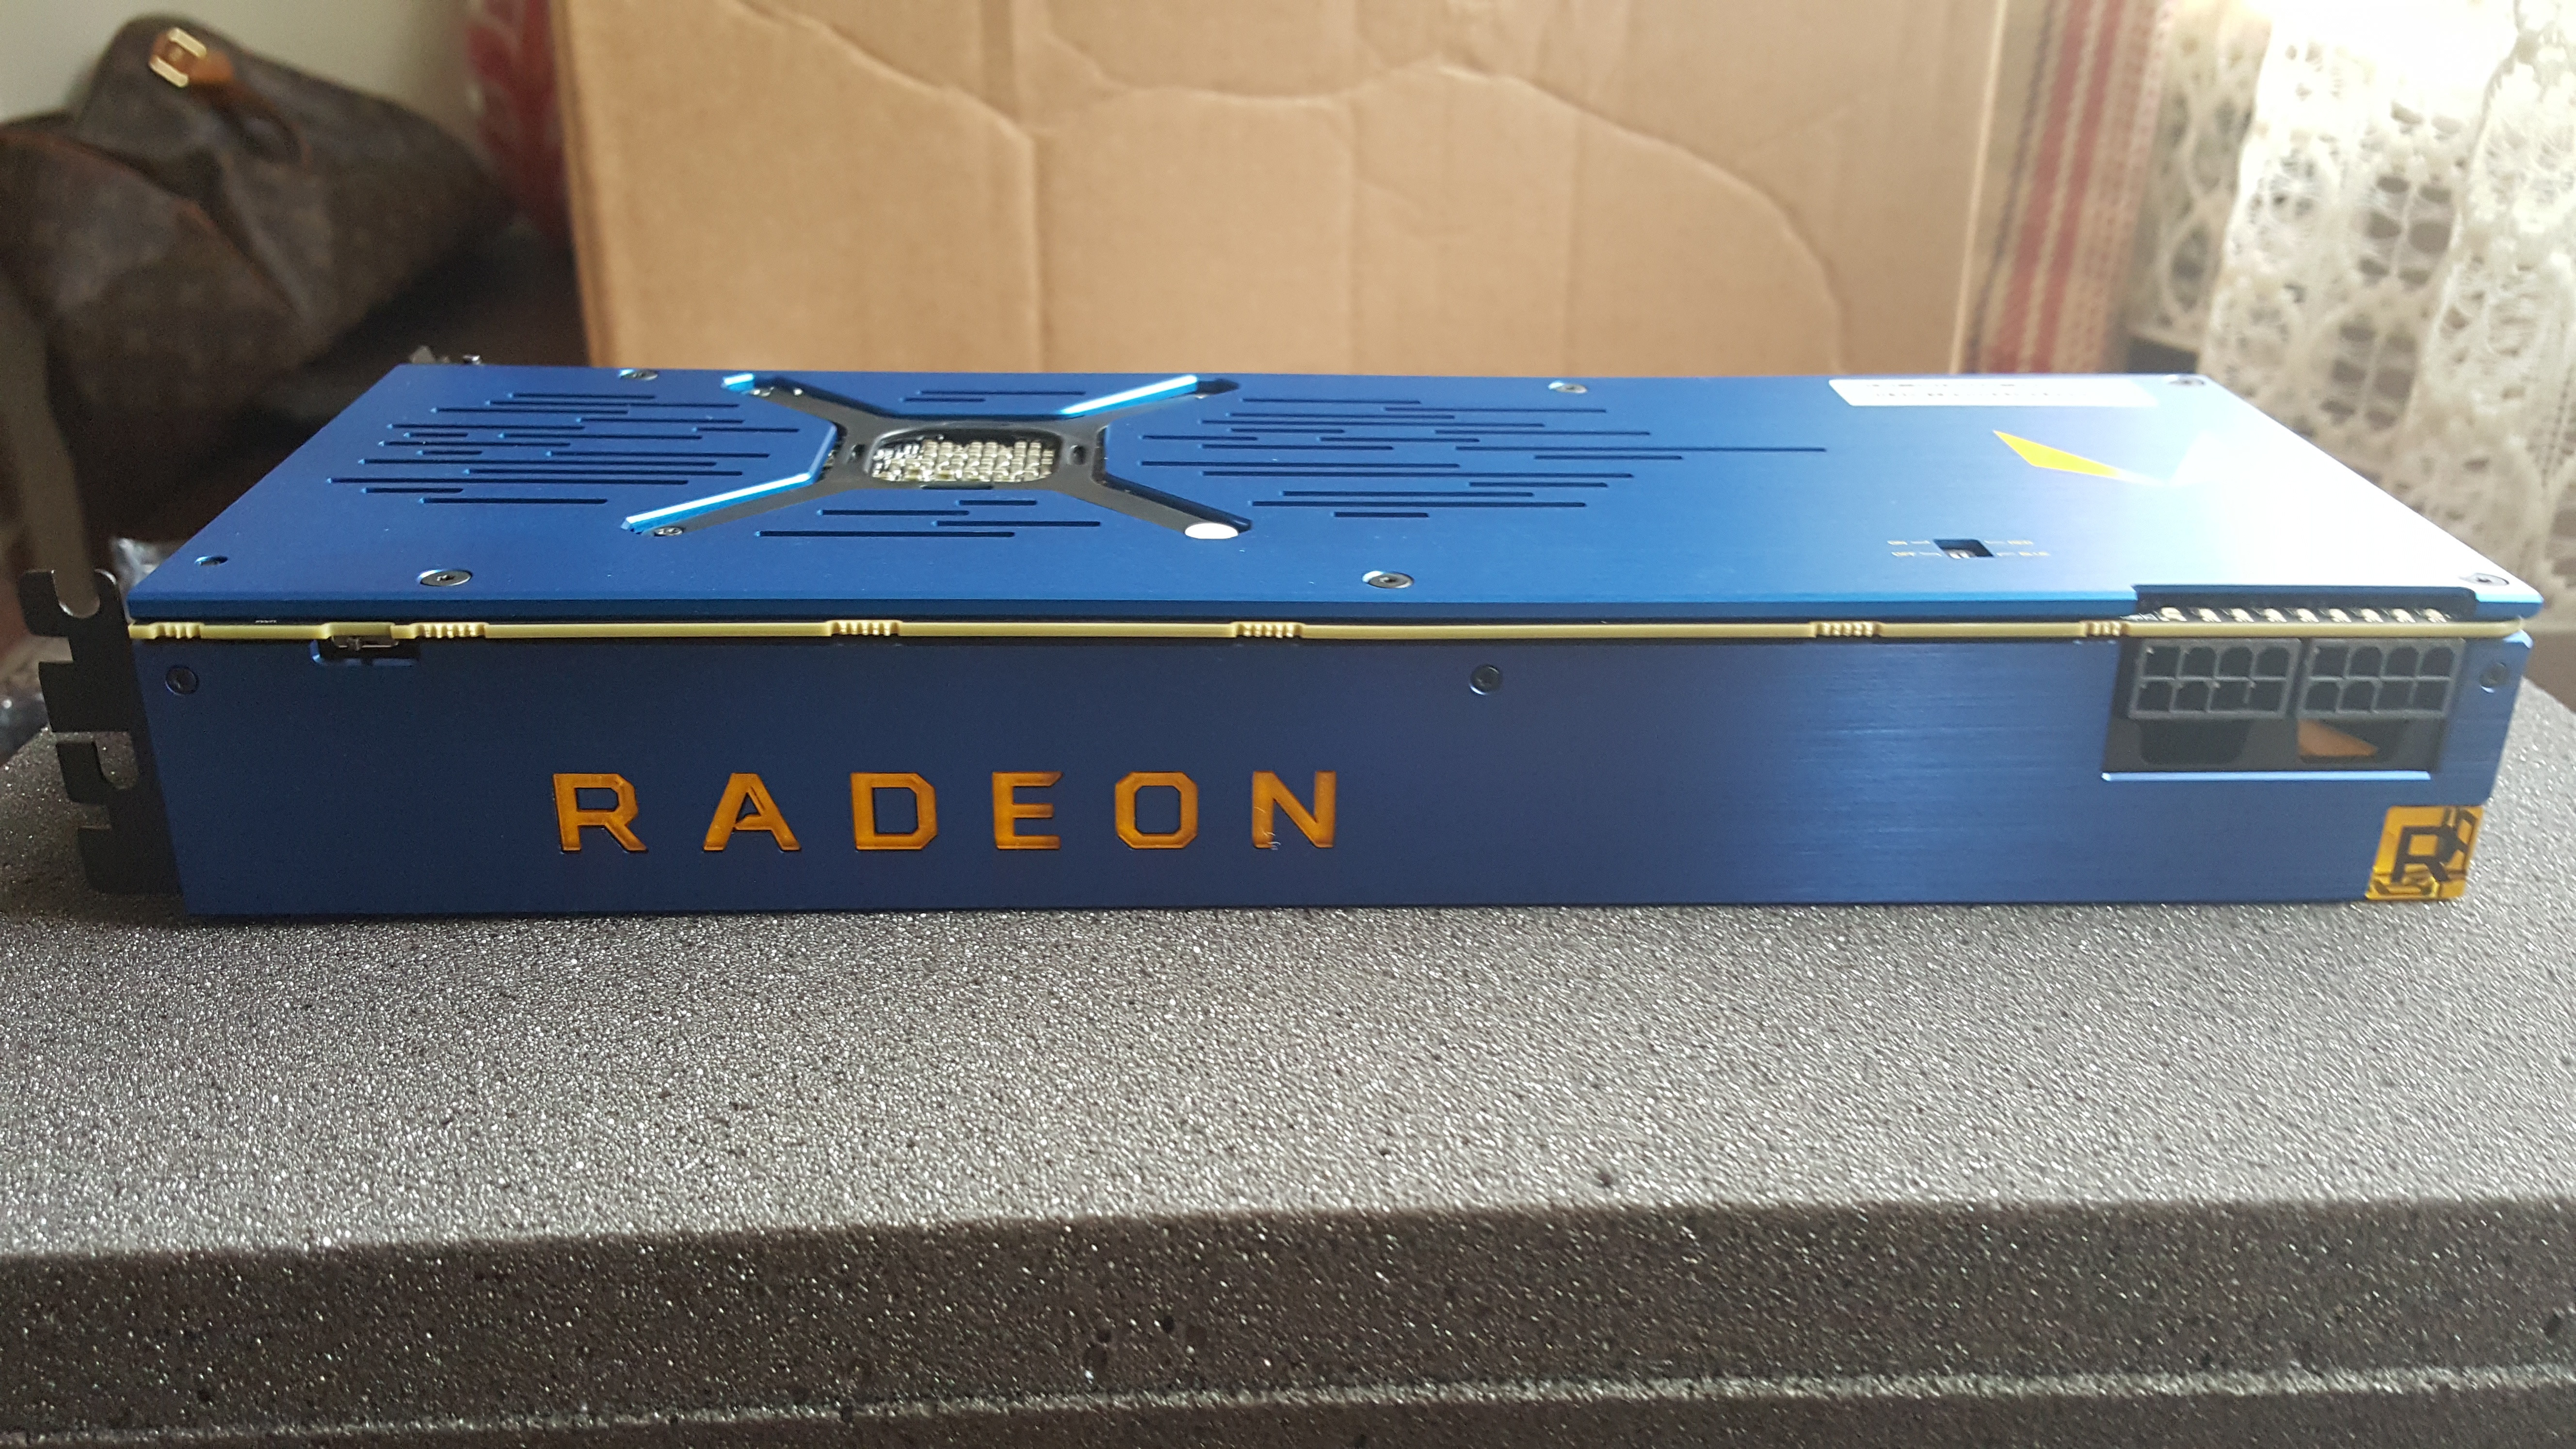 AMD Radeon Pro Vega Frontier Edition Unboxed Benchmarked